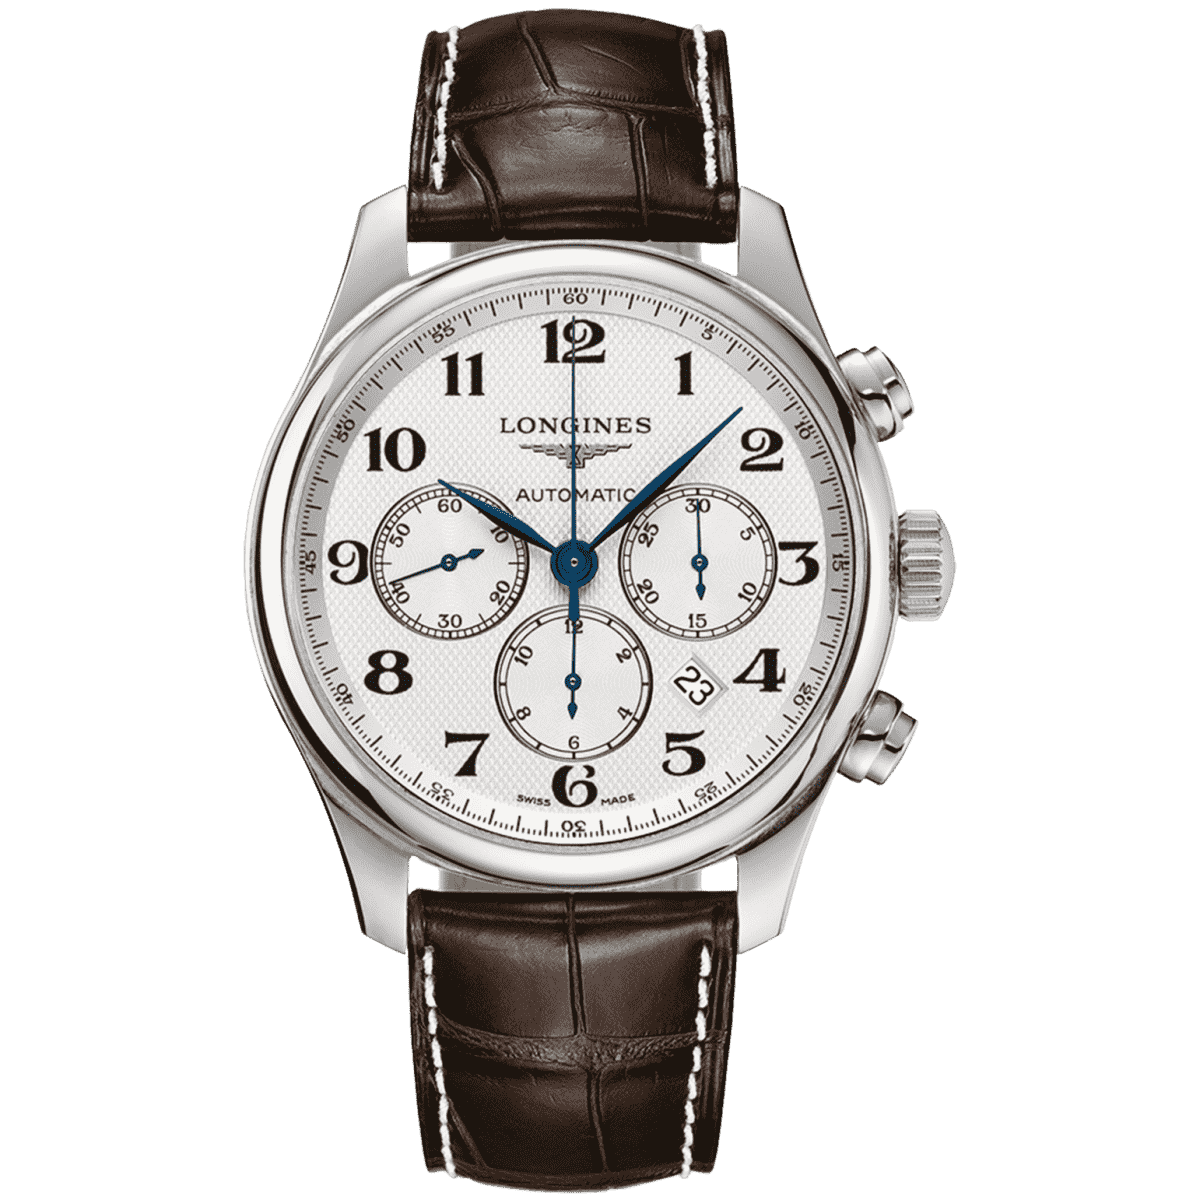 The Longines Master Collection 44 mm